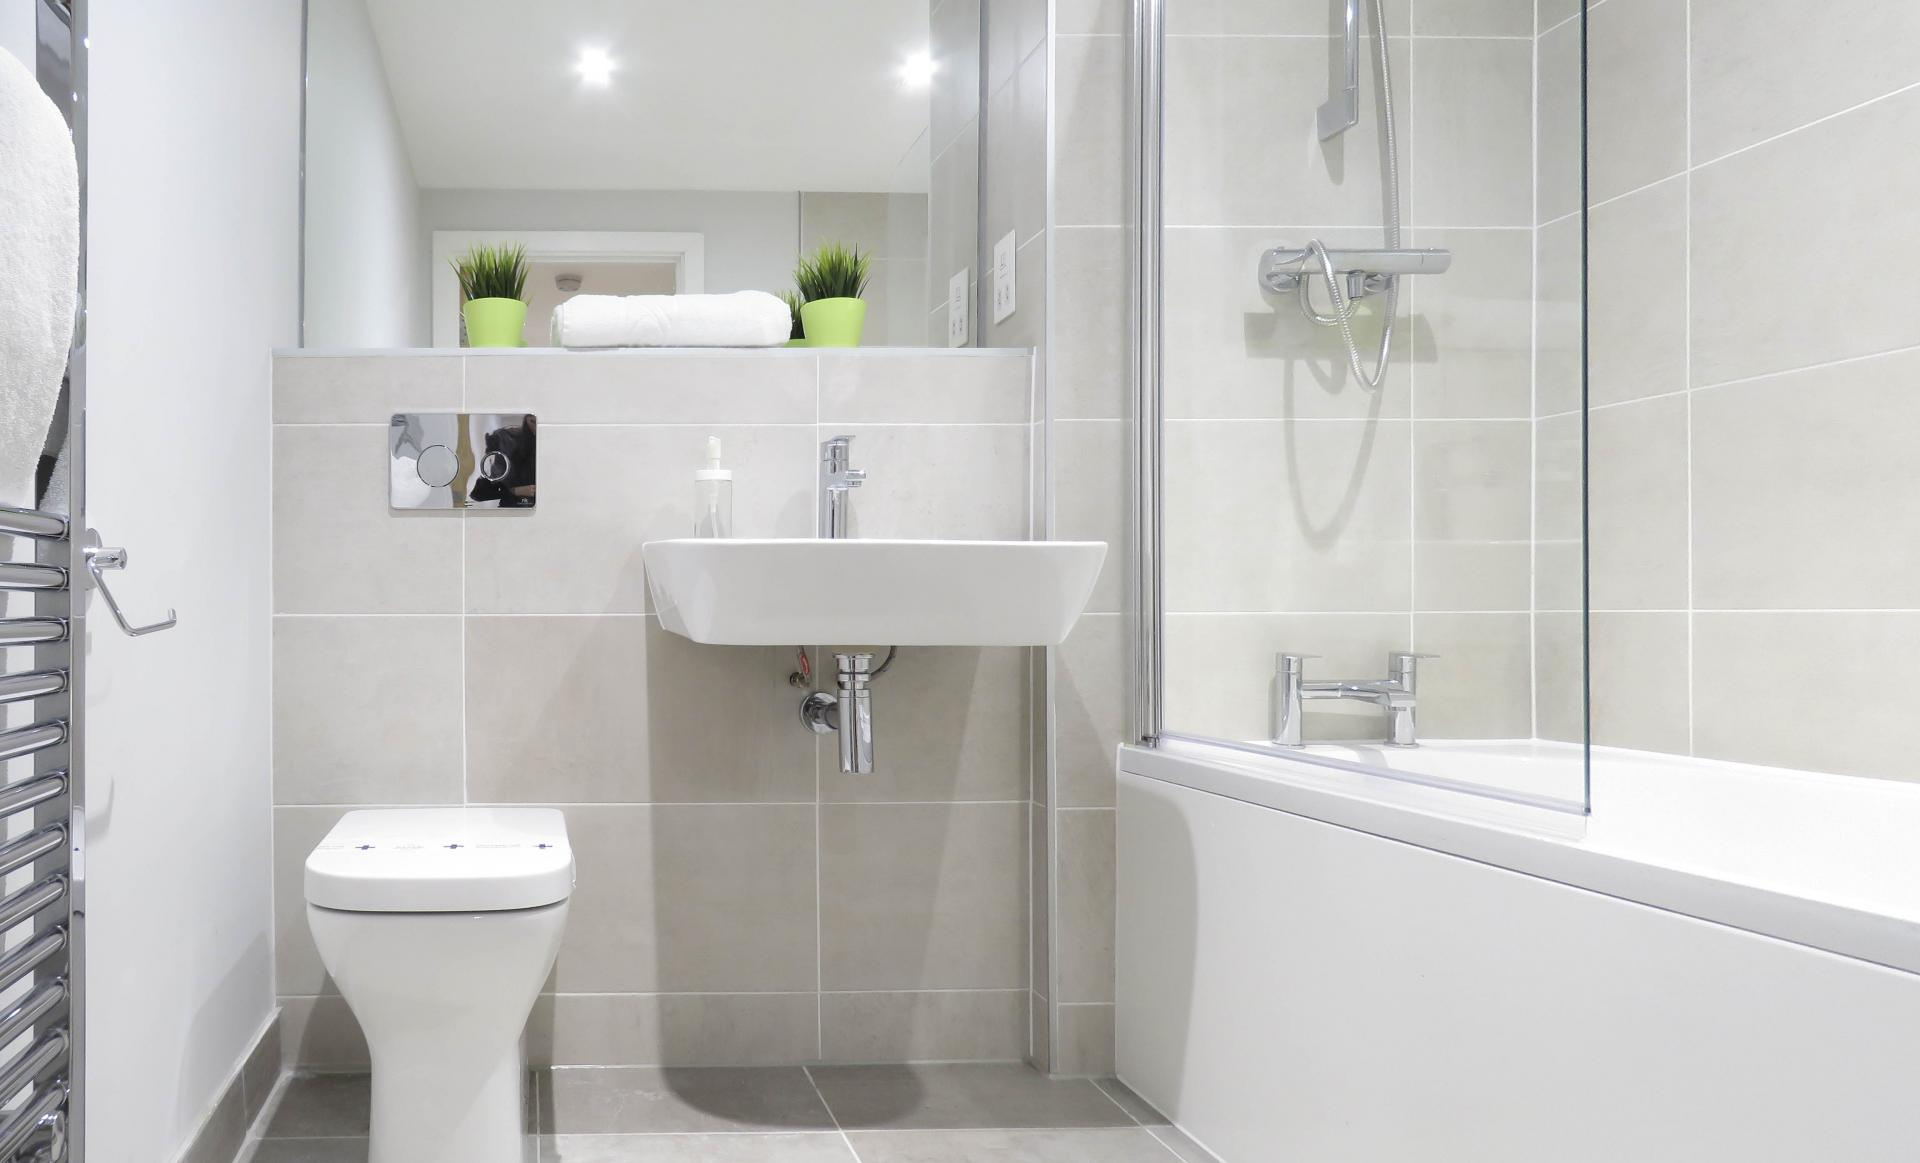 Toilet at Jewellery Quarter Serviced Apartments